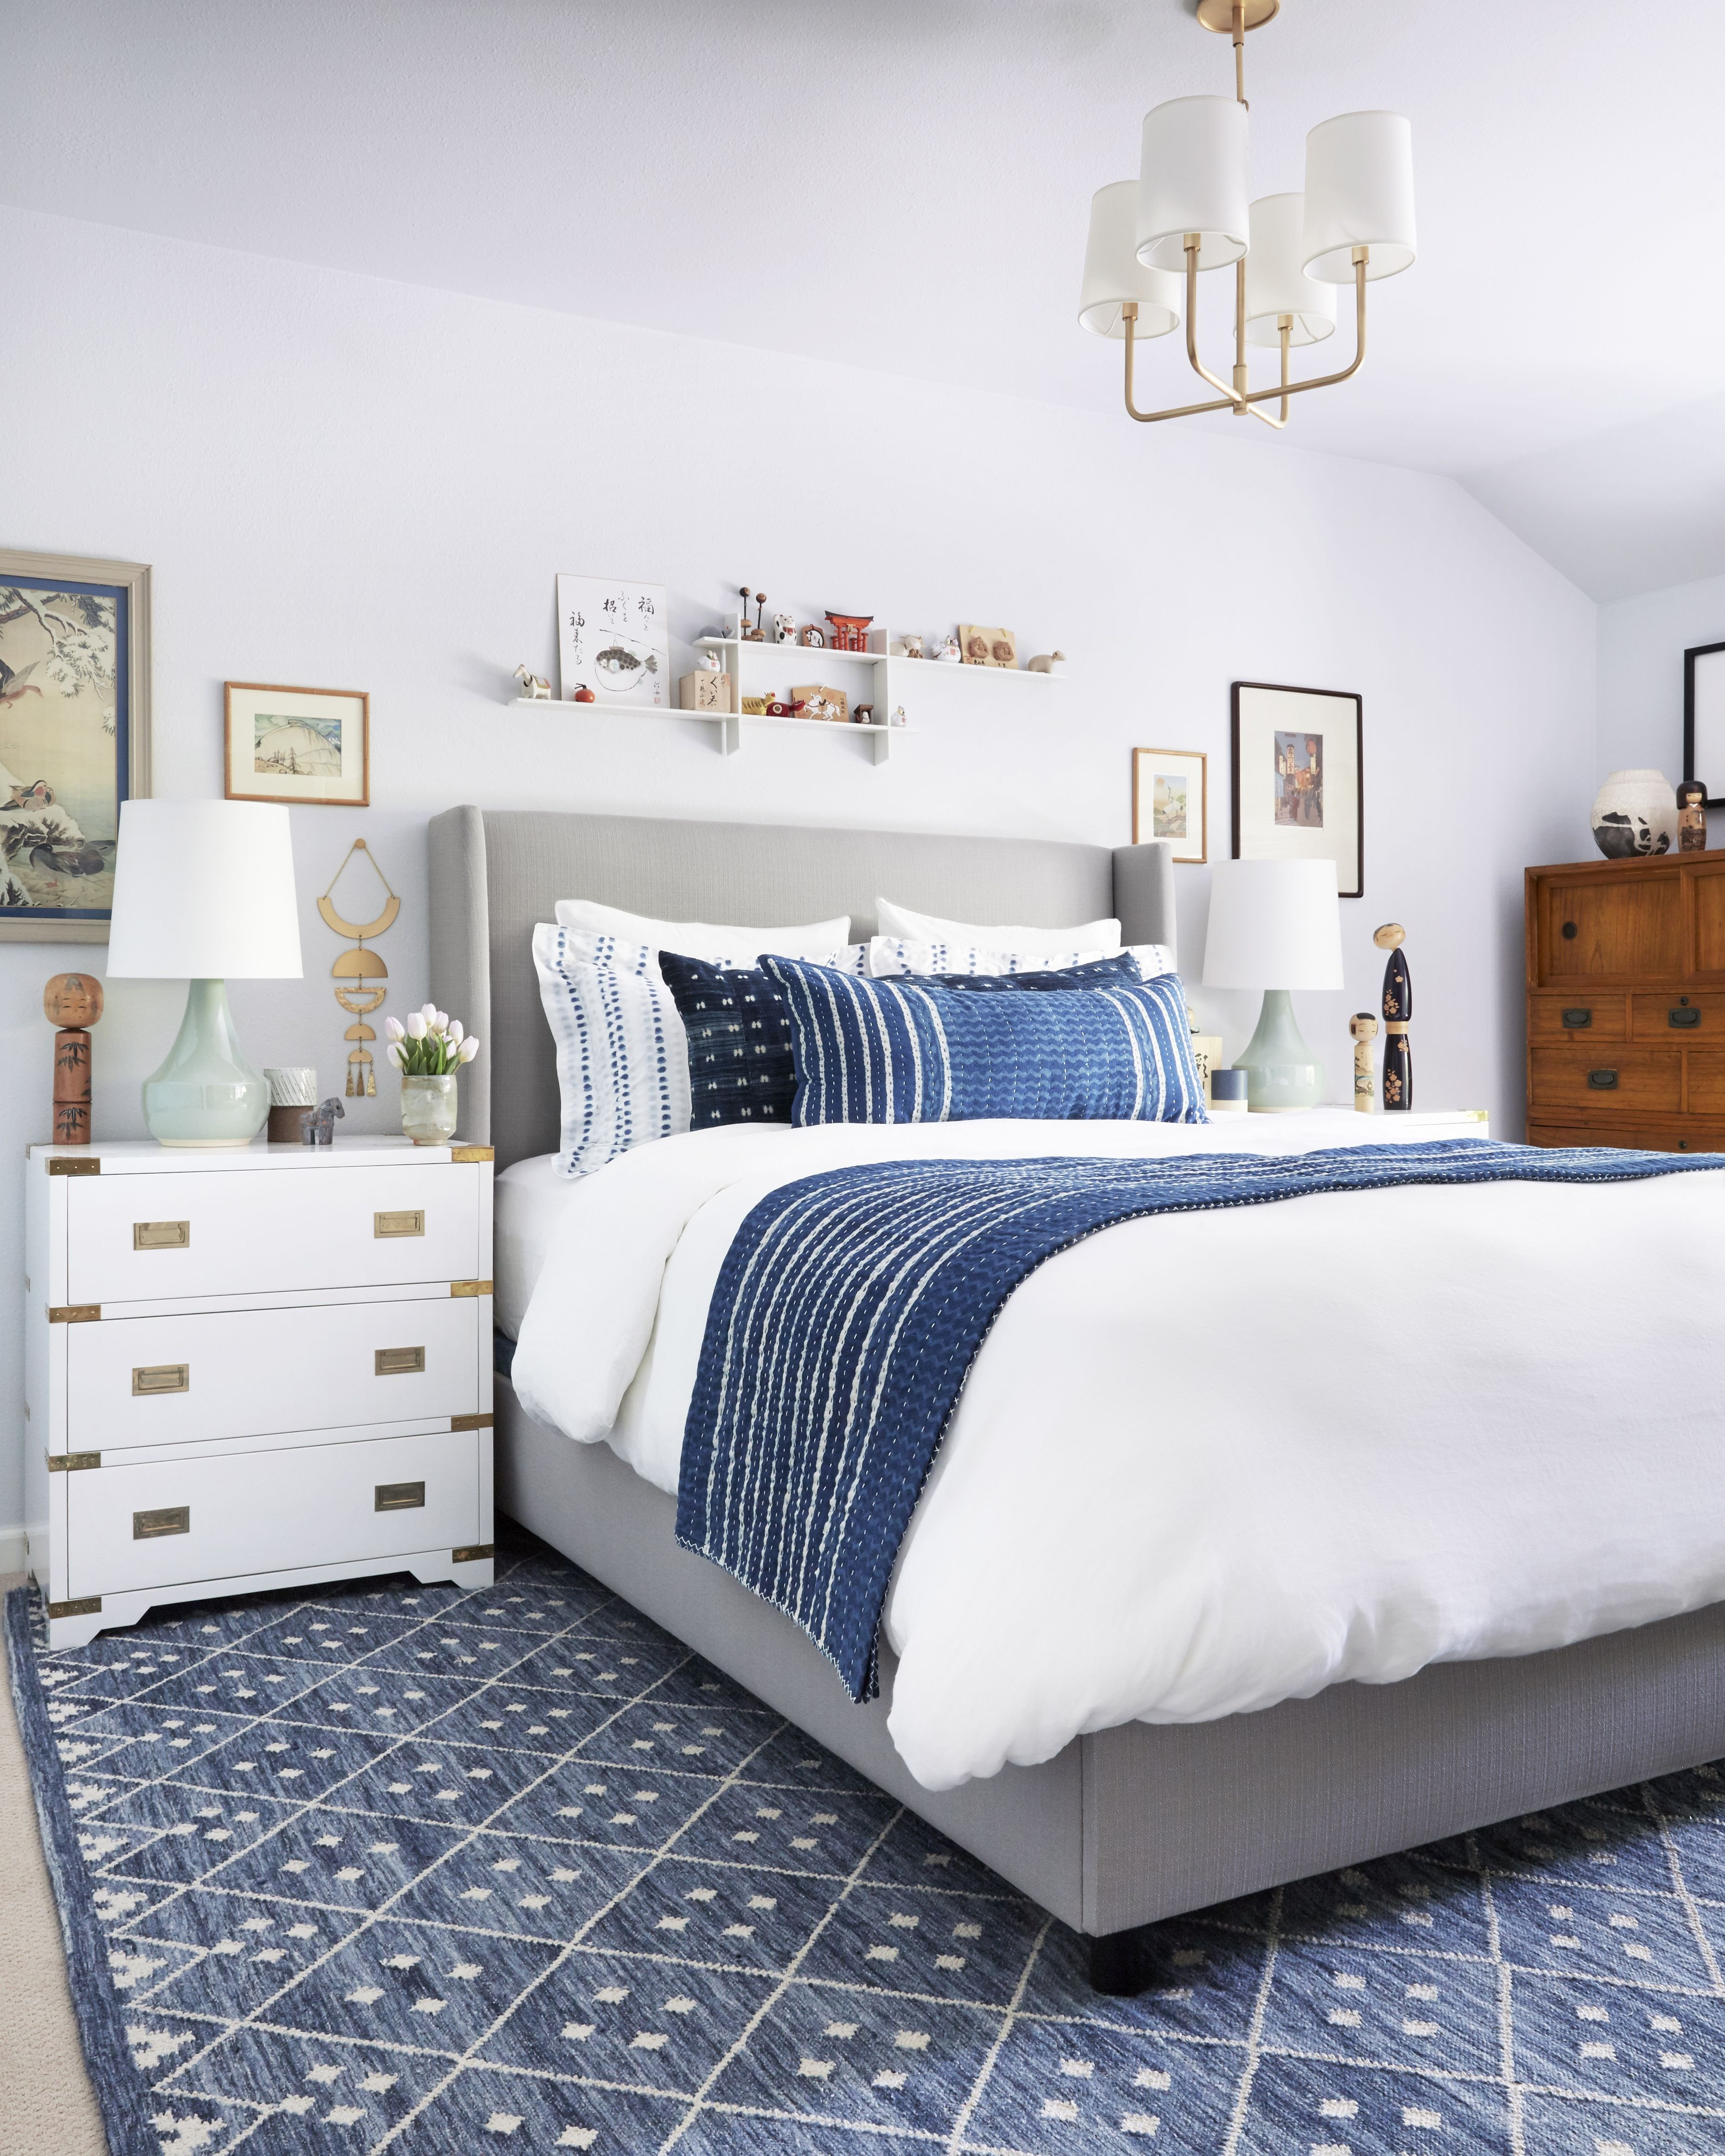 White and Gold Bedroom Ideas Fresh Guest Bedroom Ideas How to Create Big Design Impact without